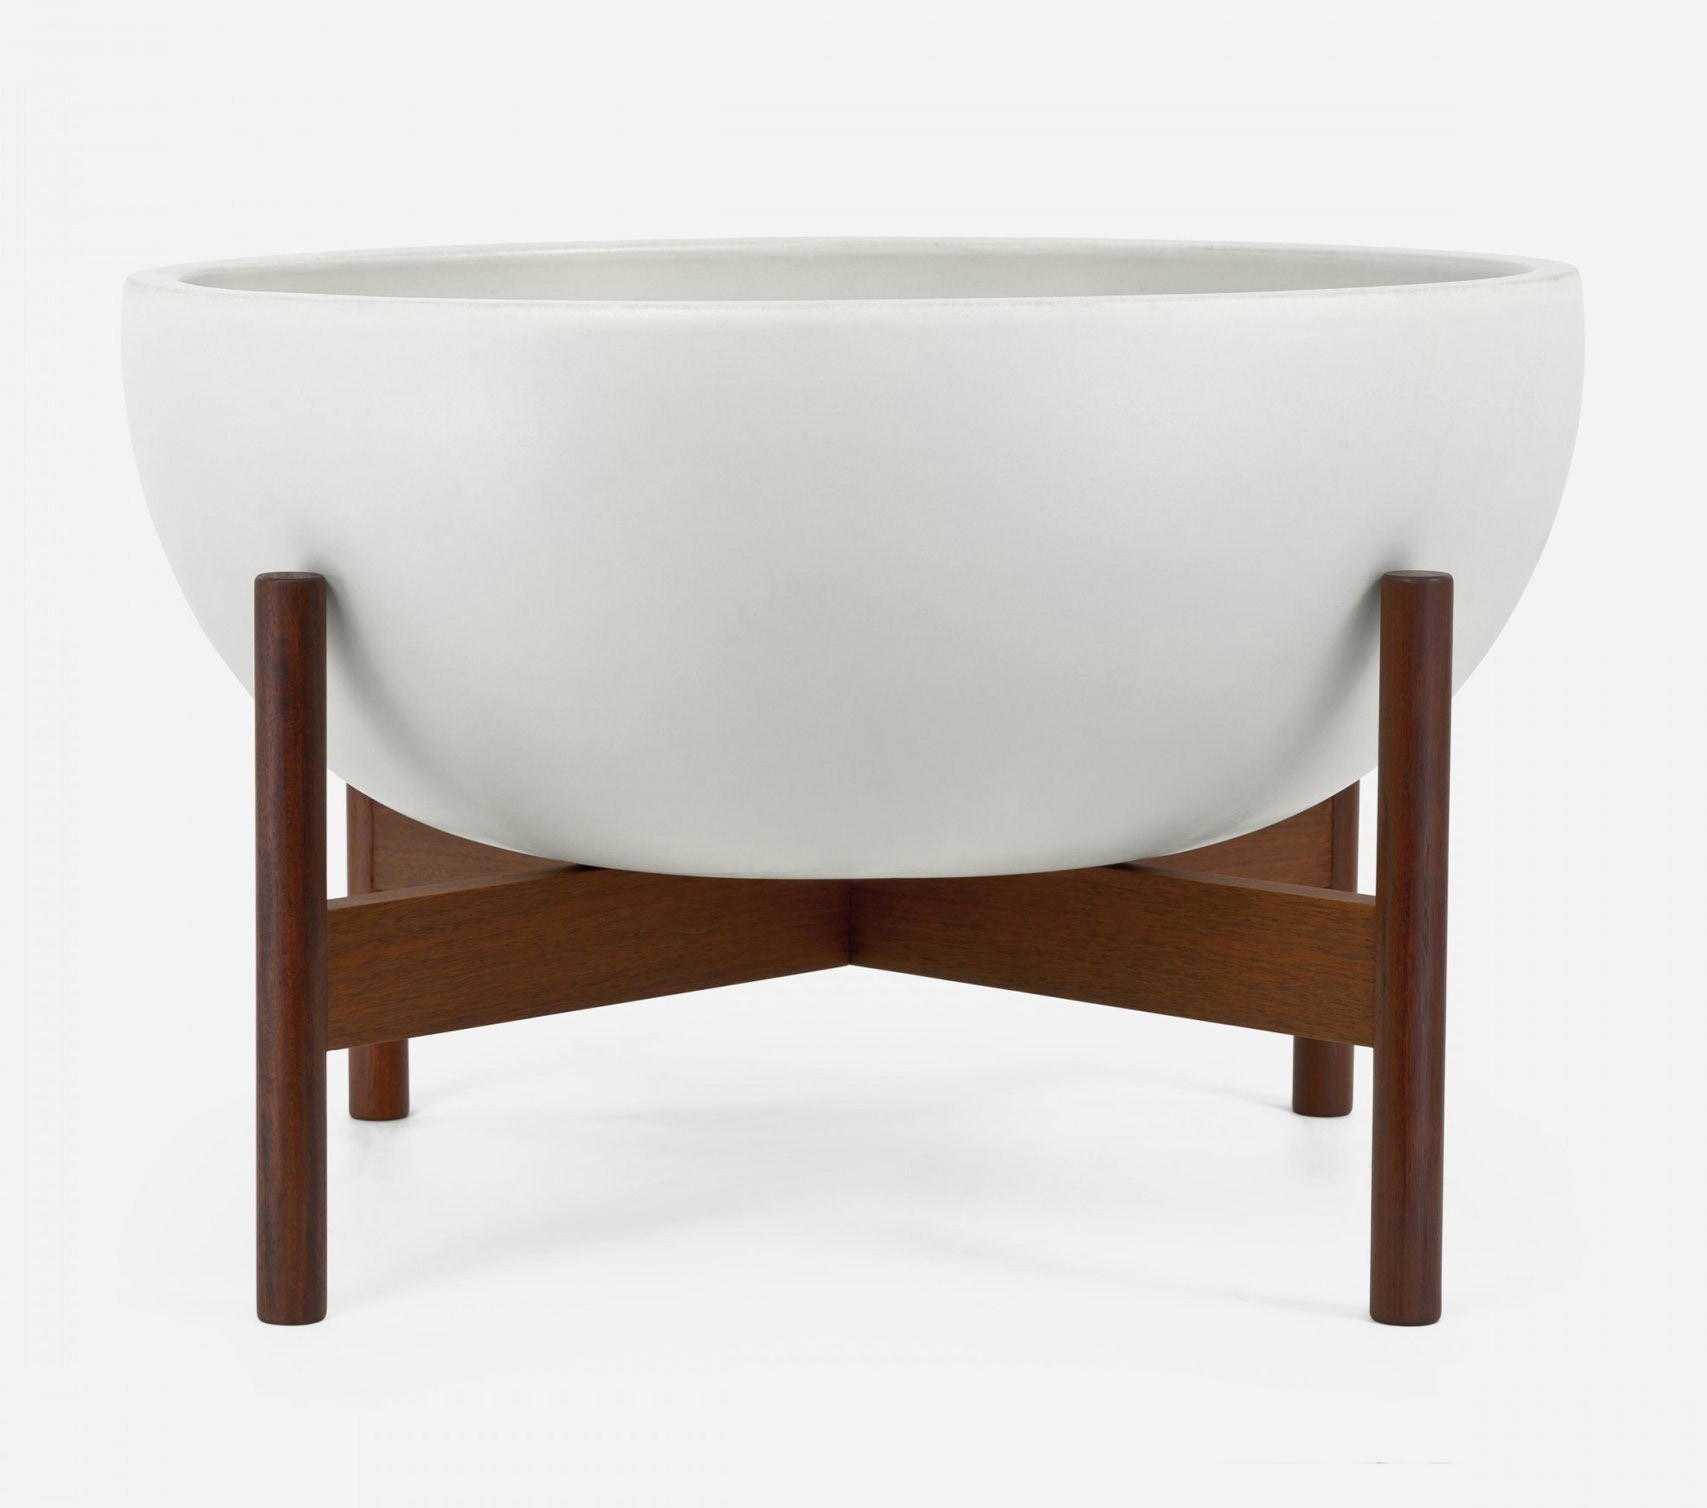 Modernica Case Study® Ceramics Large Bowl With Stand (Planter)